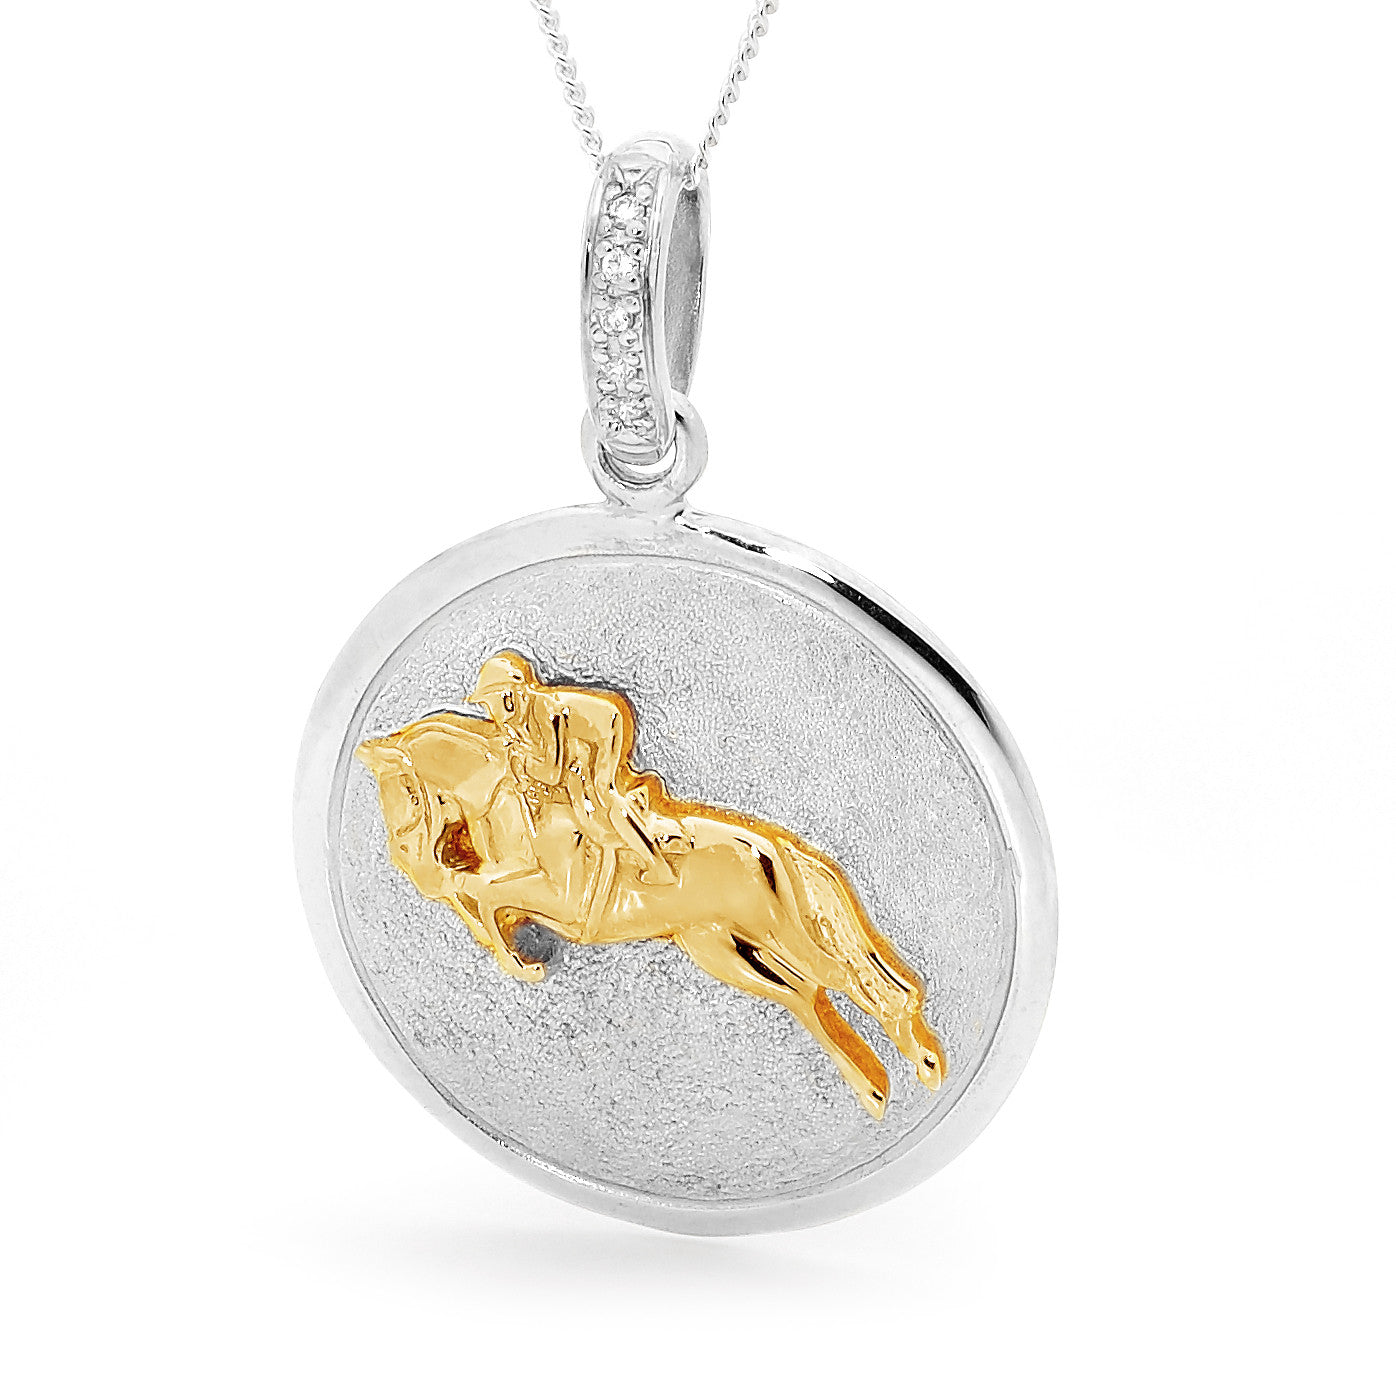 Showjumper Pendant - 9ct Yellow Gold Accent on Sterling Silver